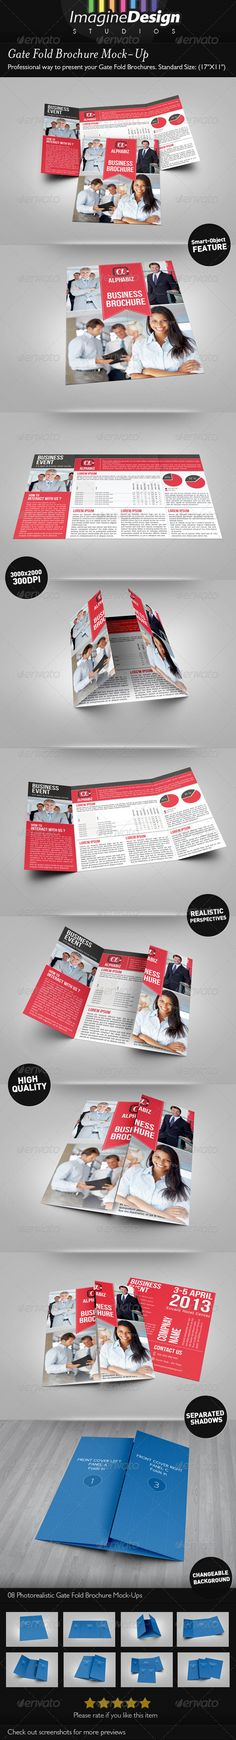 Trifold BrochureA4 Mock-up Products, Graphics and Brochures - gate fold brochure mockup